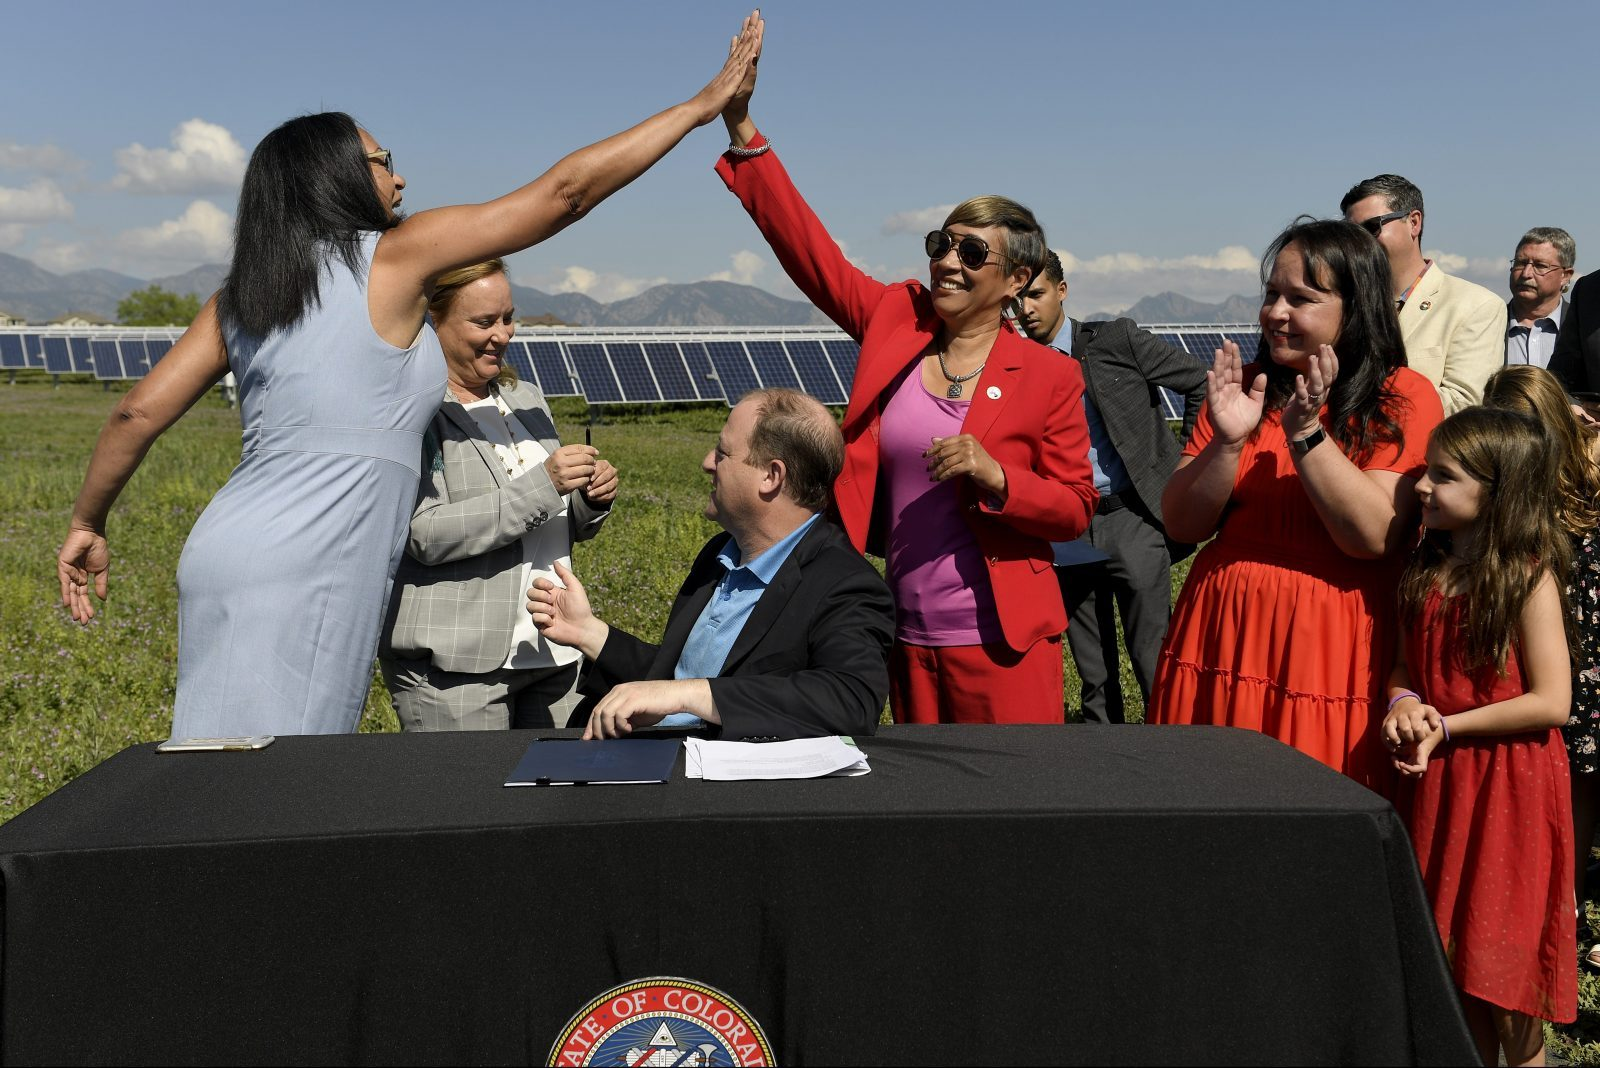 Representative Dominique Jackson and Senator Angela Williams High five after Governor of Colorado Jared Polis signs a climate action bill into law.